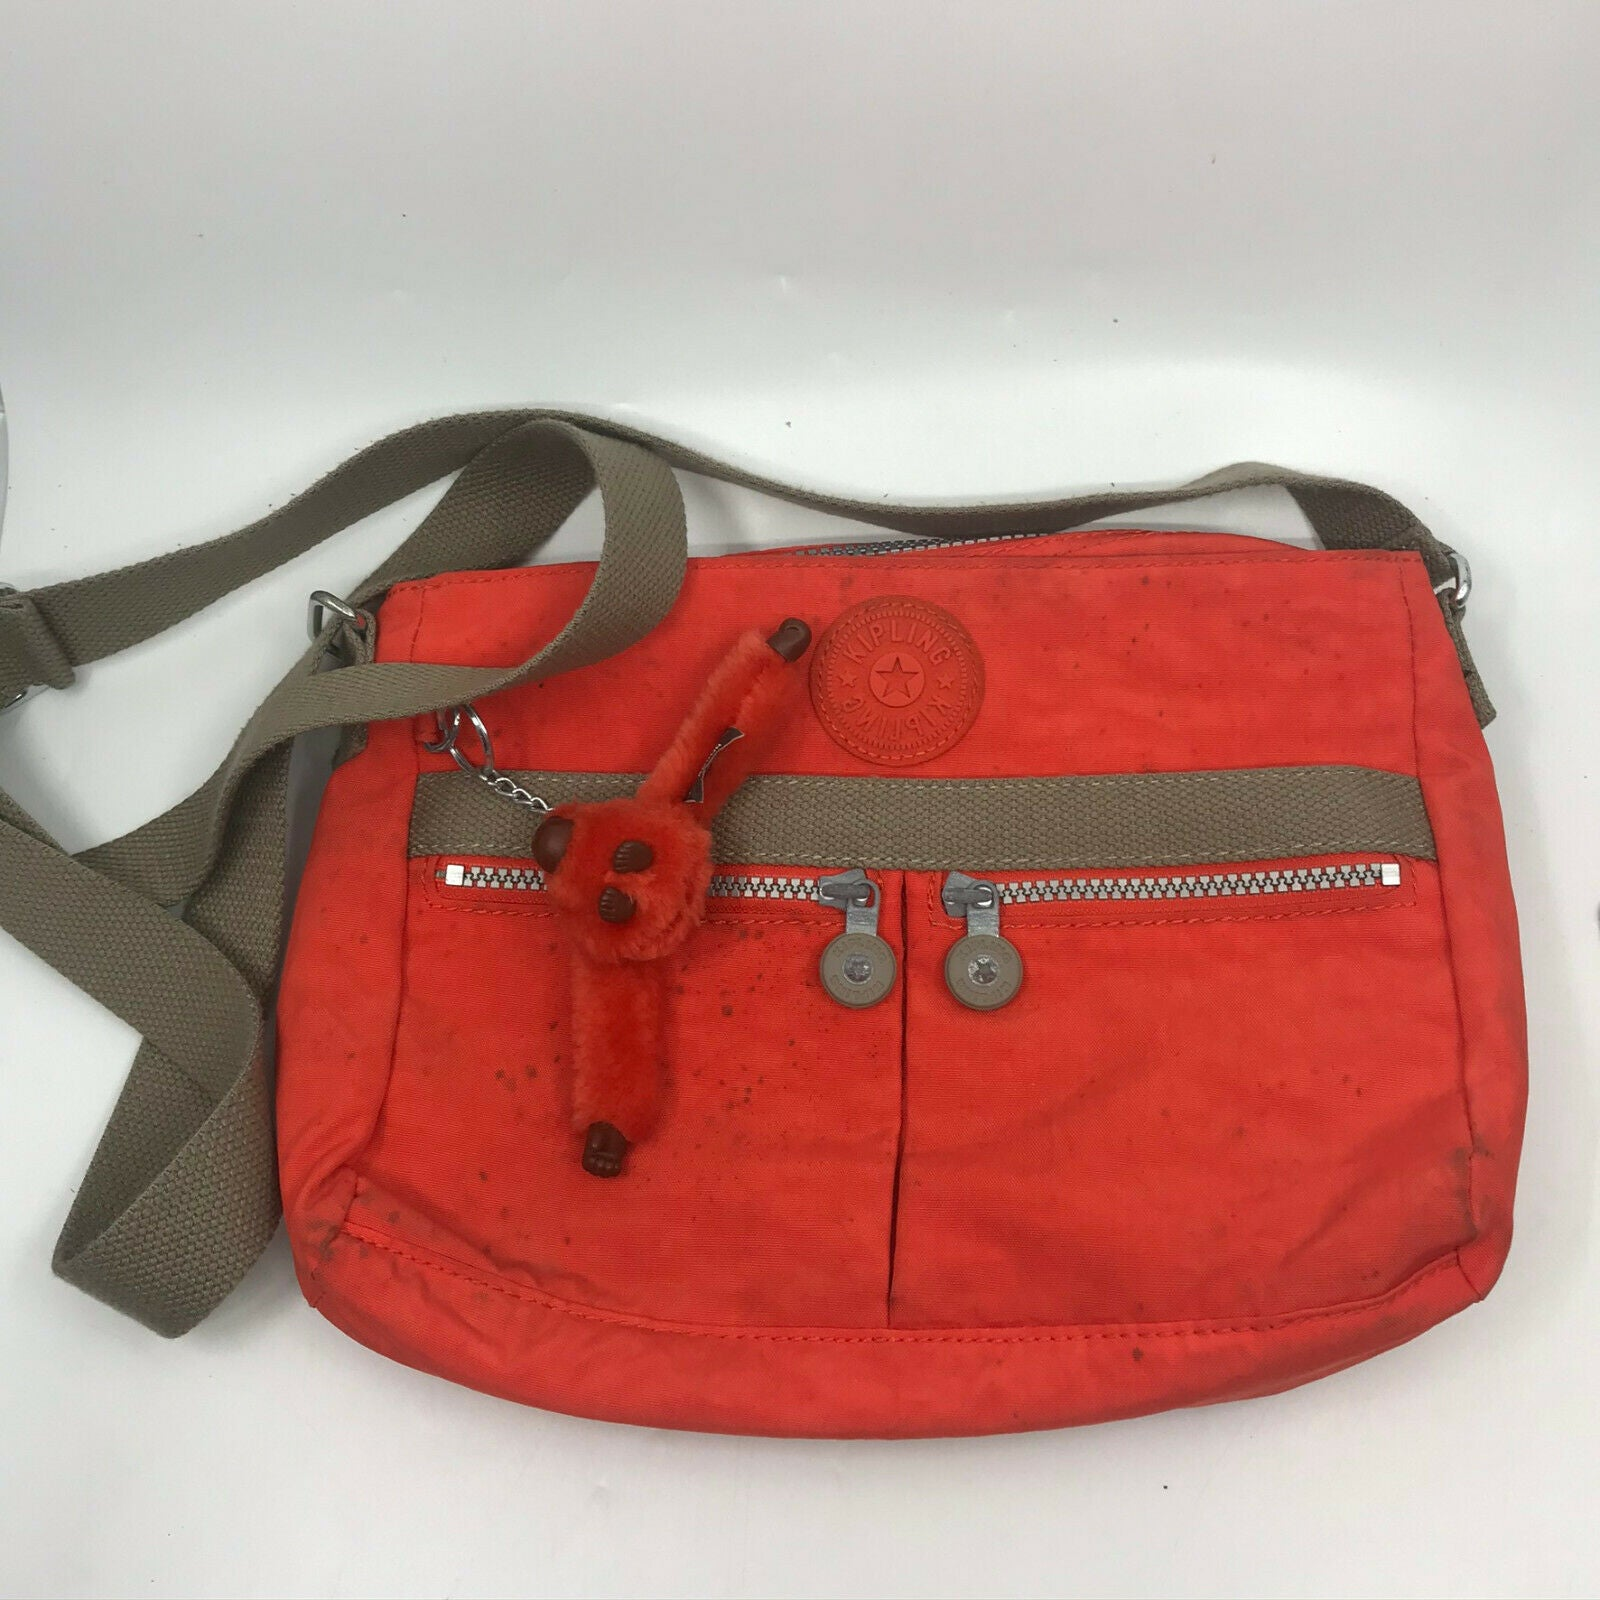 Kipling Orange Nylon Medium Size Crossbody Bag